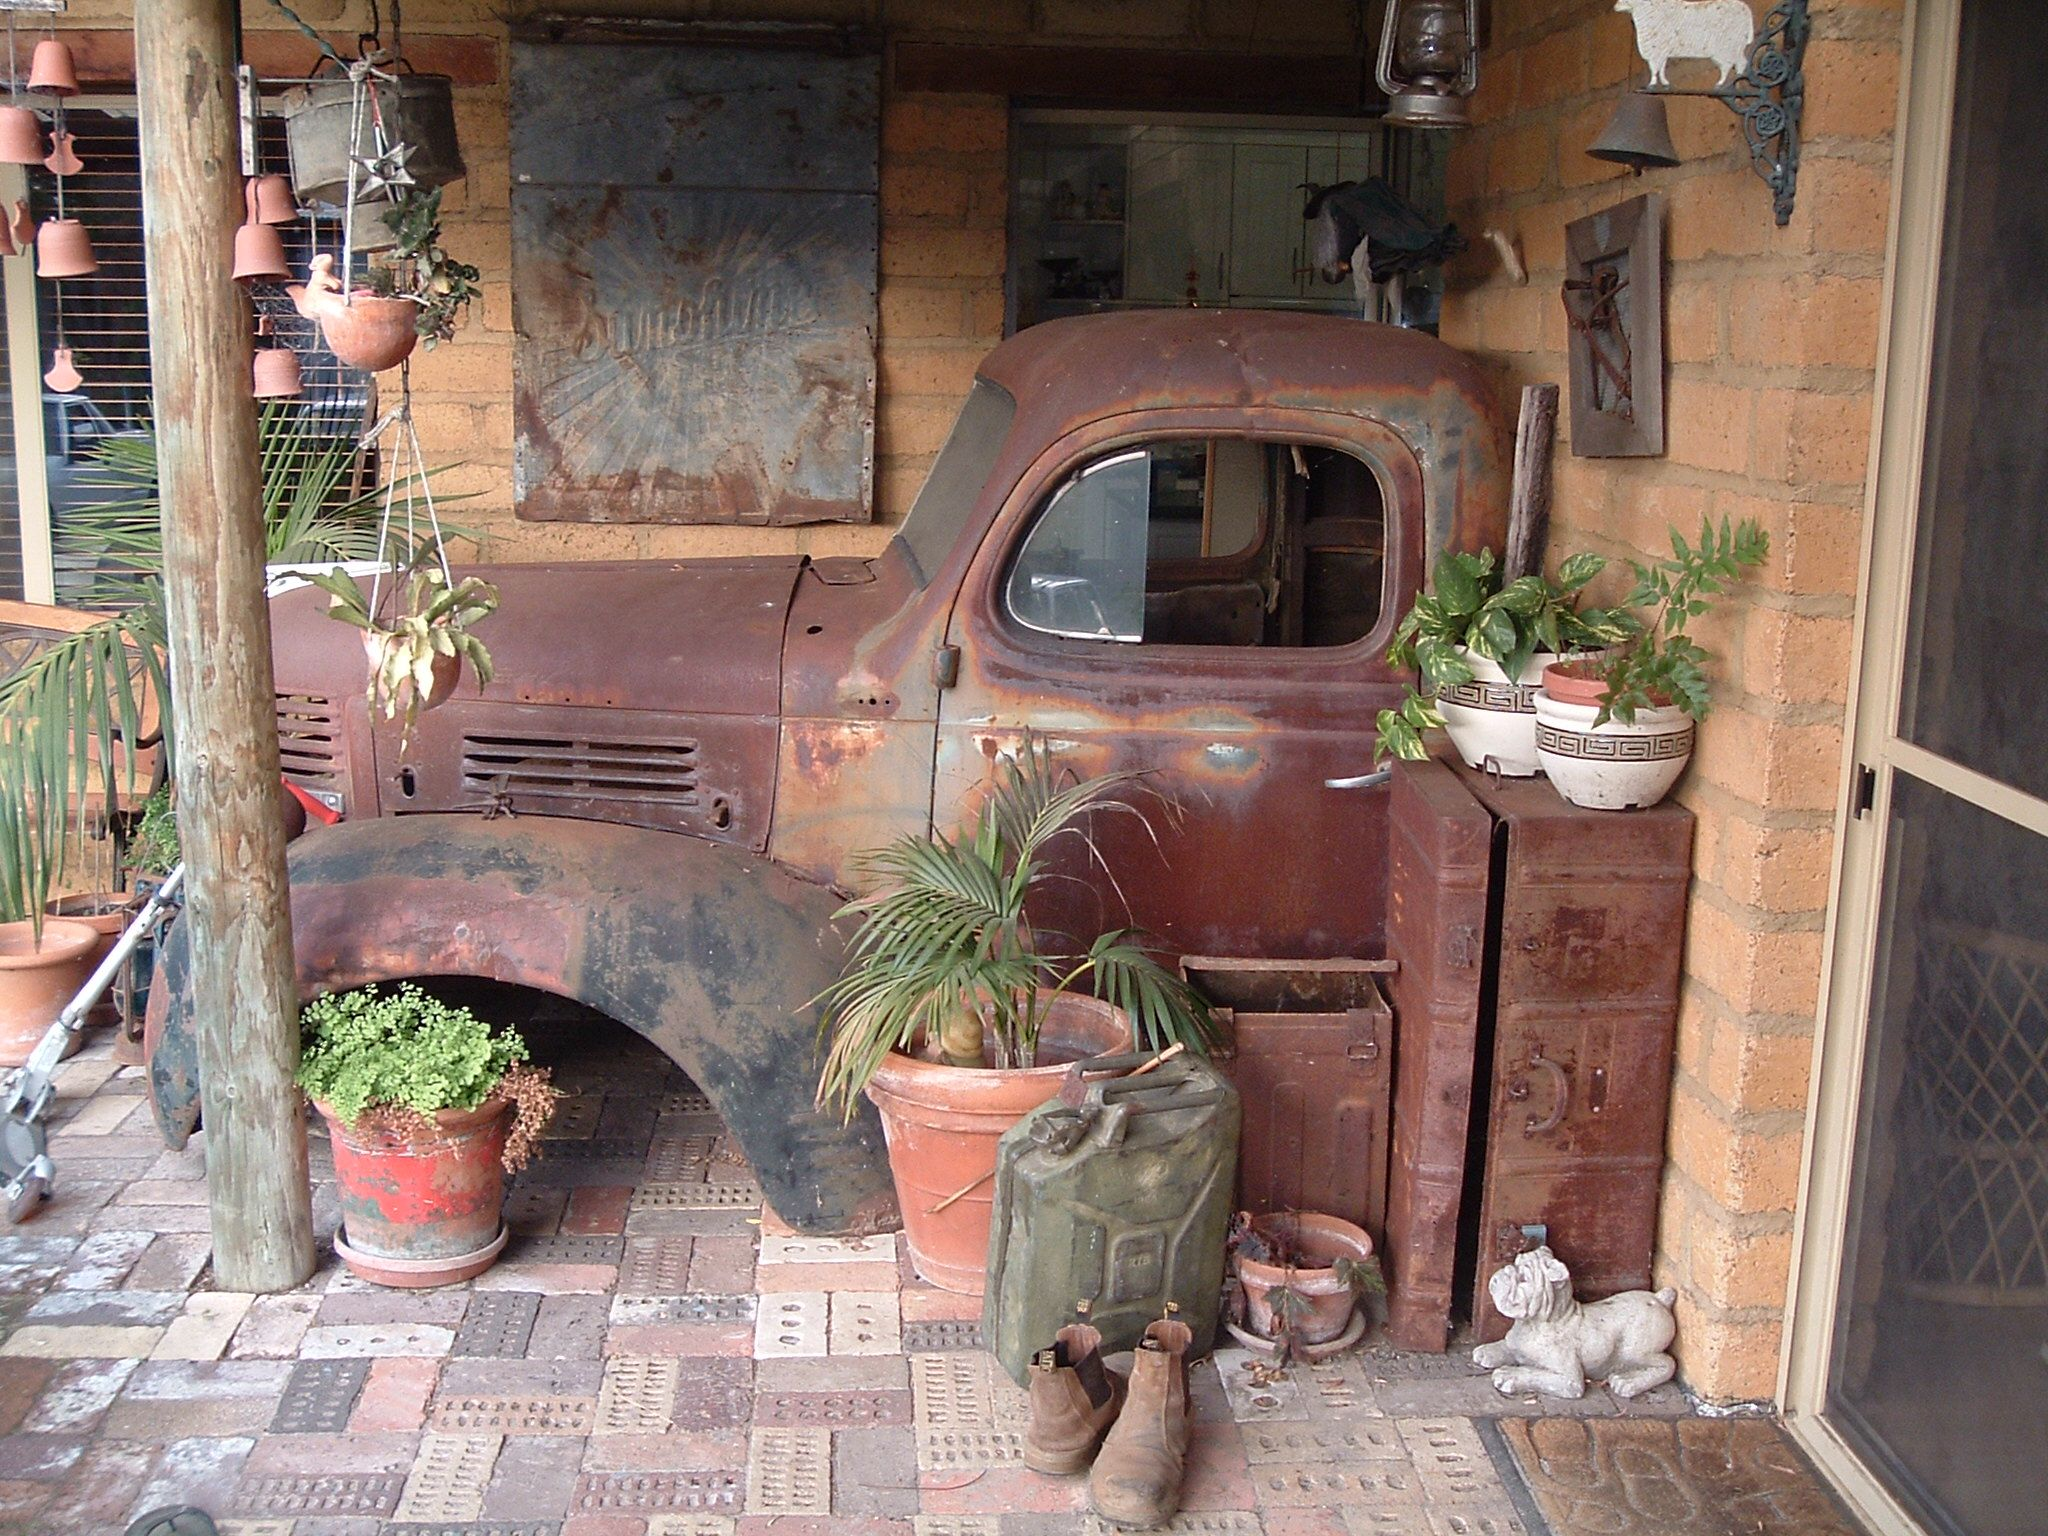 Our rusty Old Dodge Truck, at the moment a cool garden